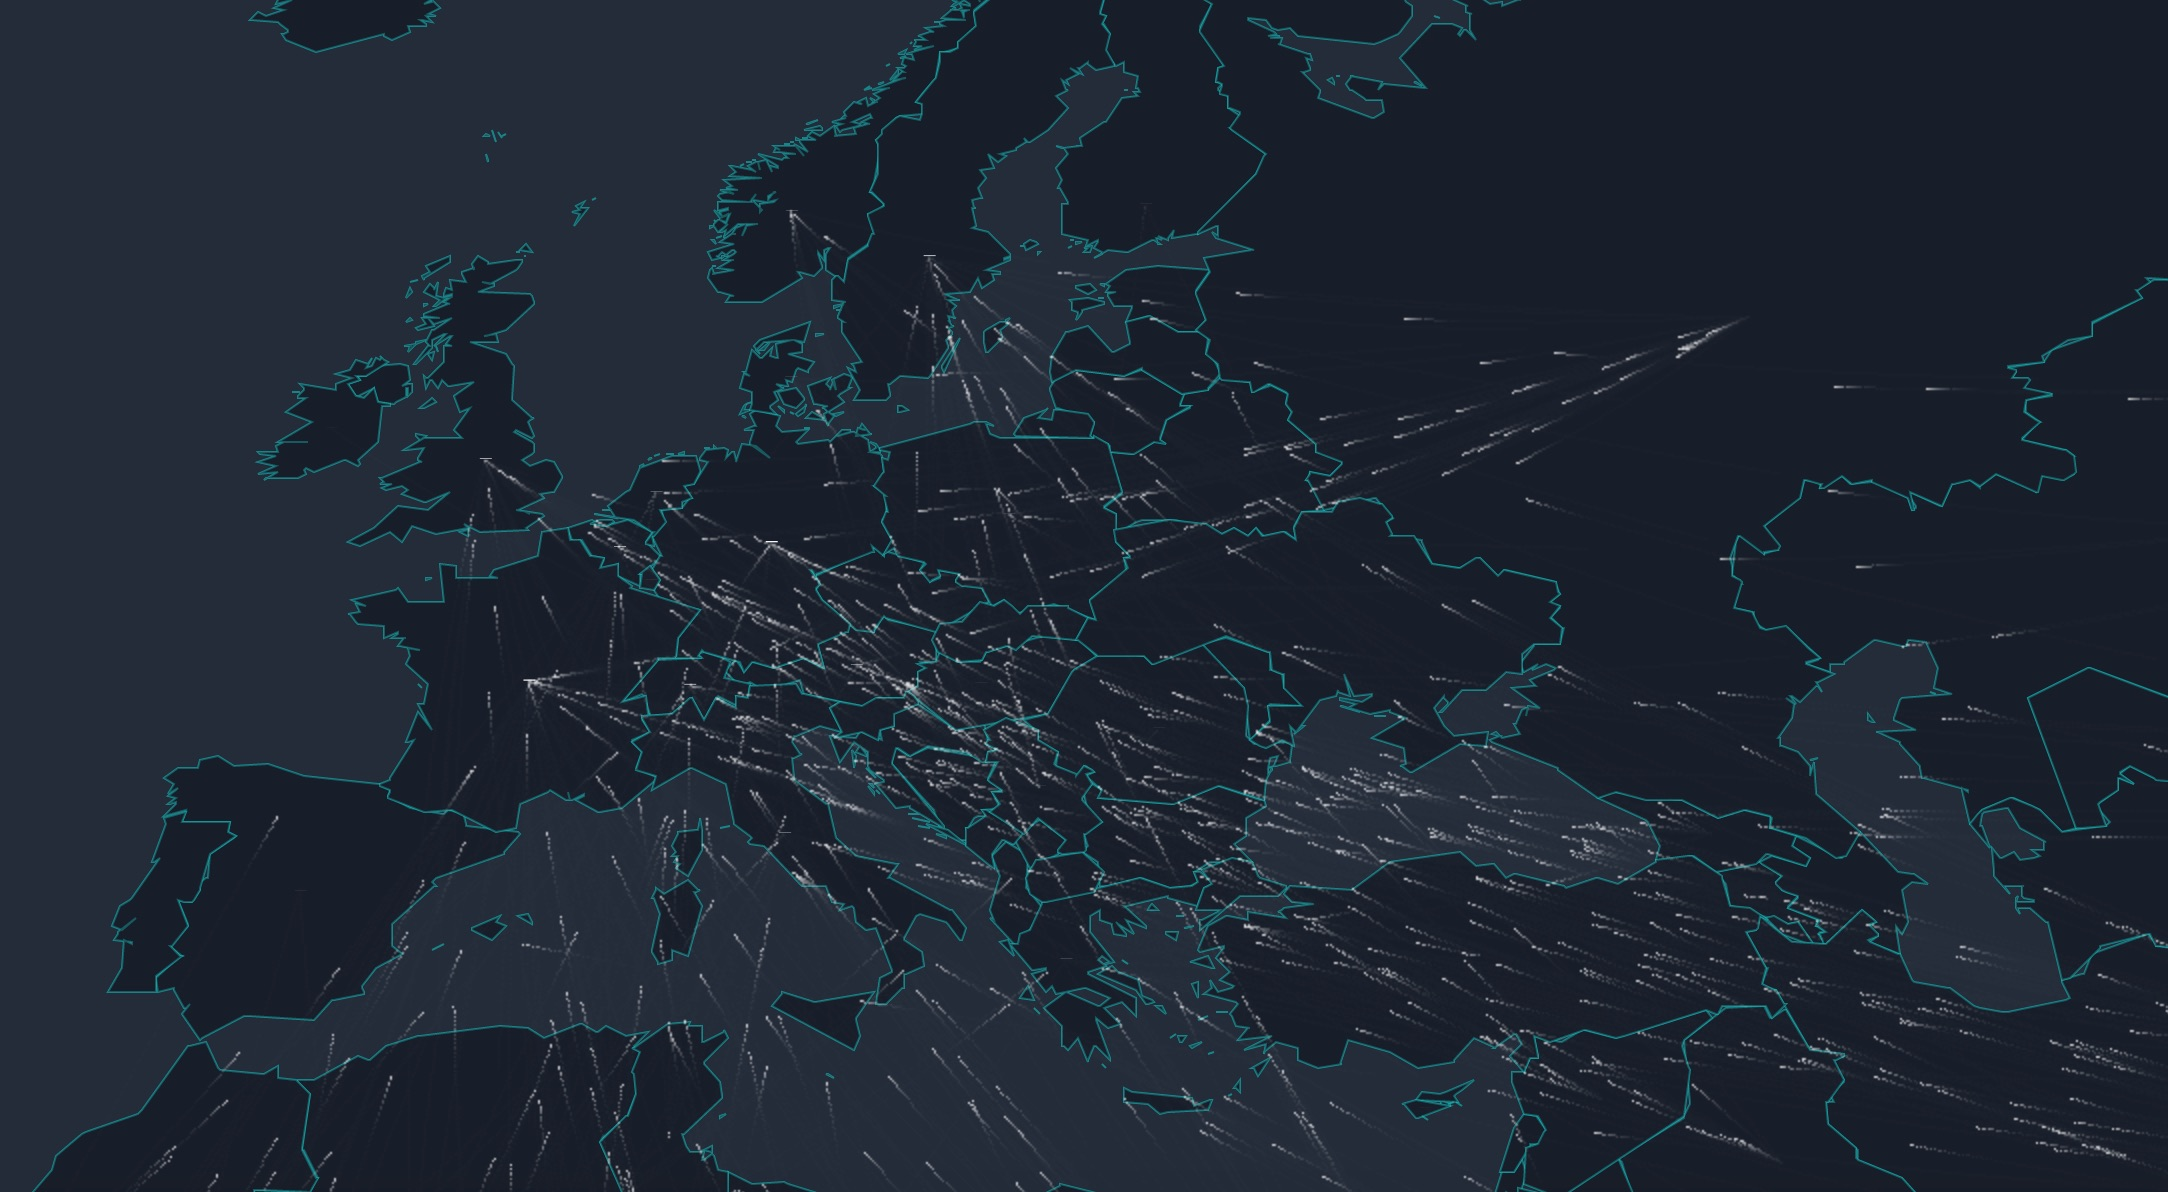 Europe's migrant crisis: A roundup of visualizations